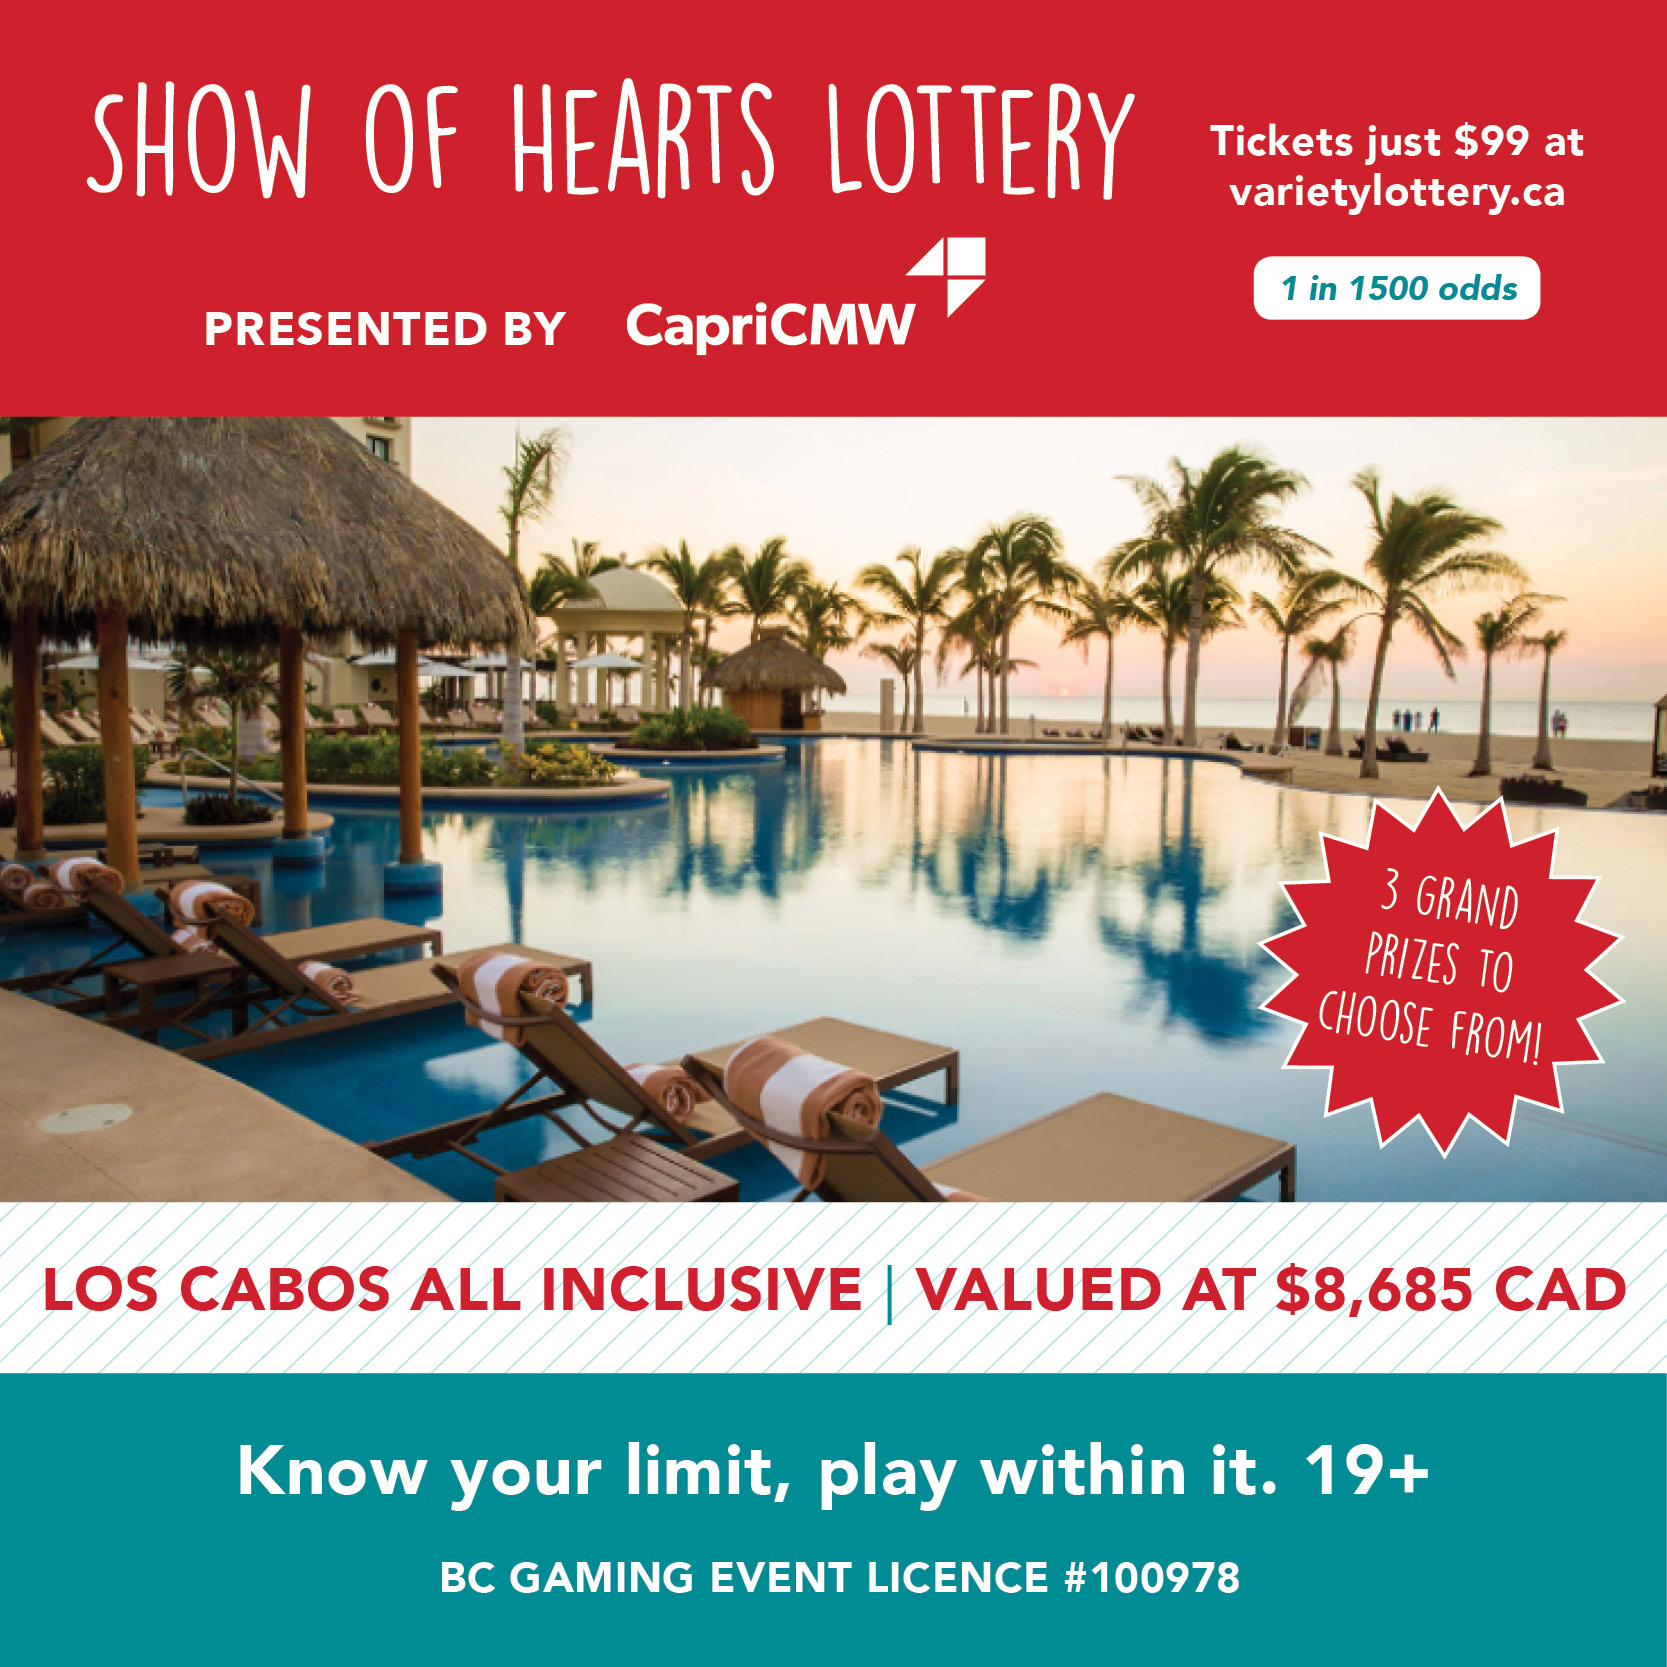 Lottery-prizes-social-media-final-Los-Cabos.jpg